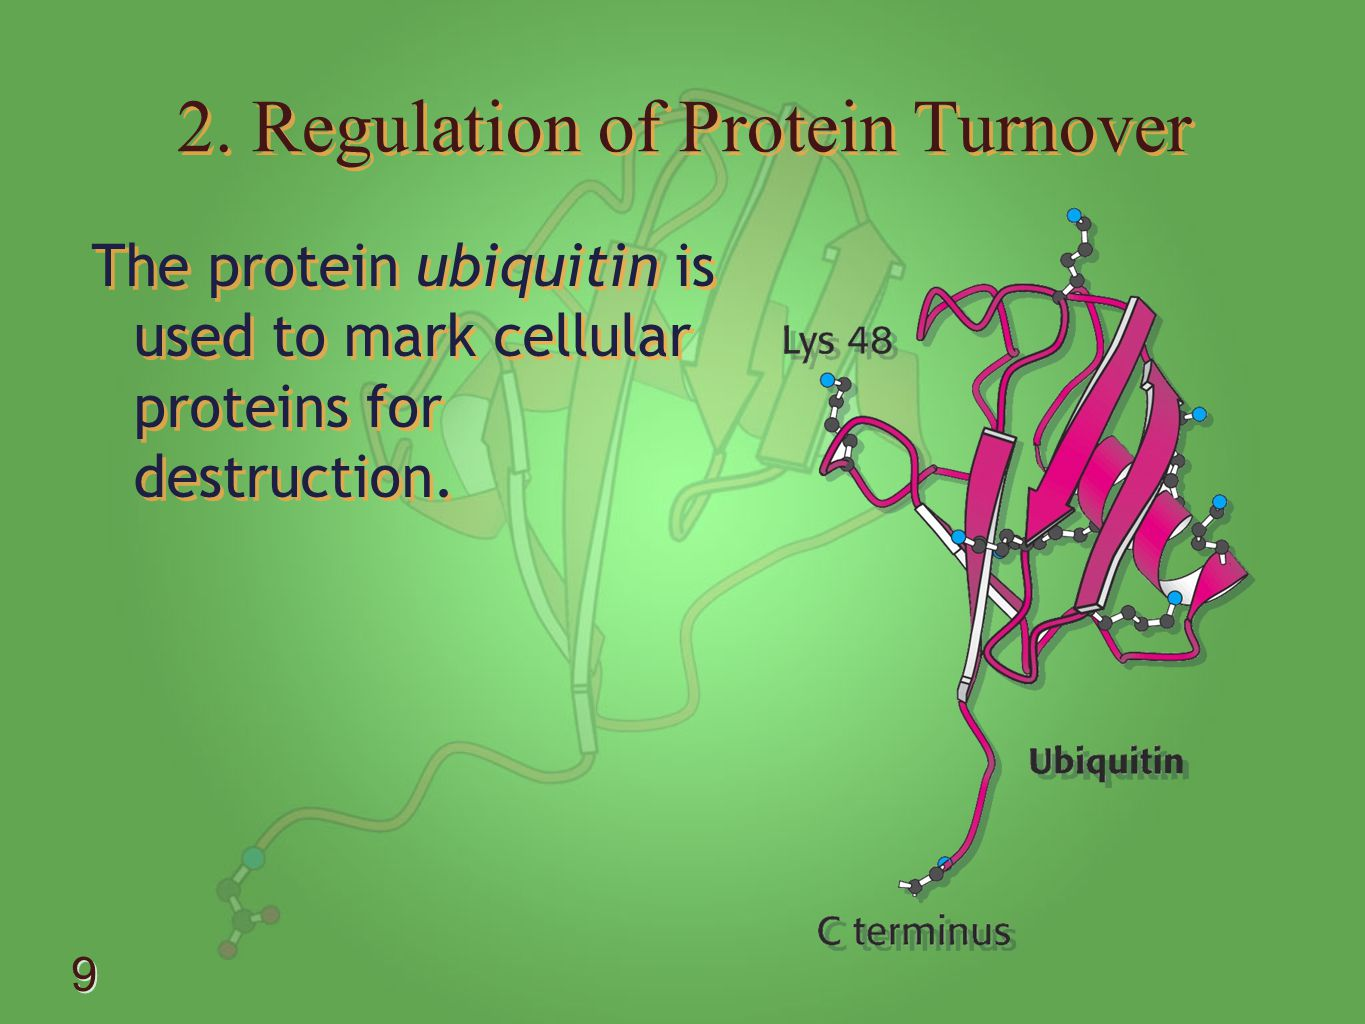 2. Regulation of Protein Turnover